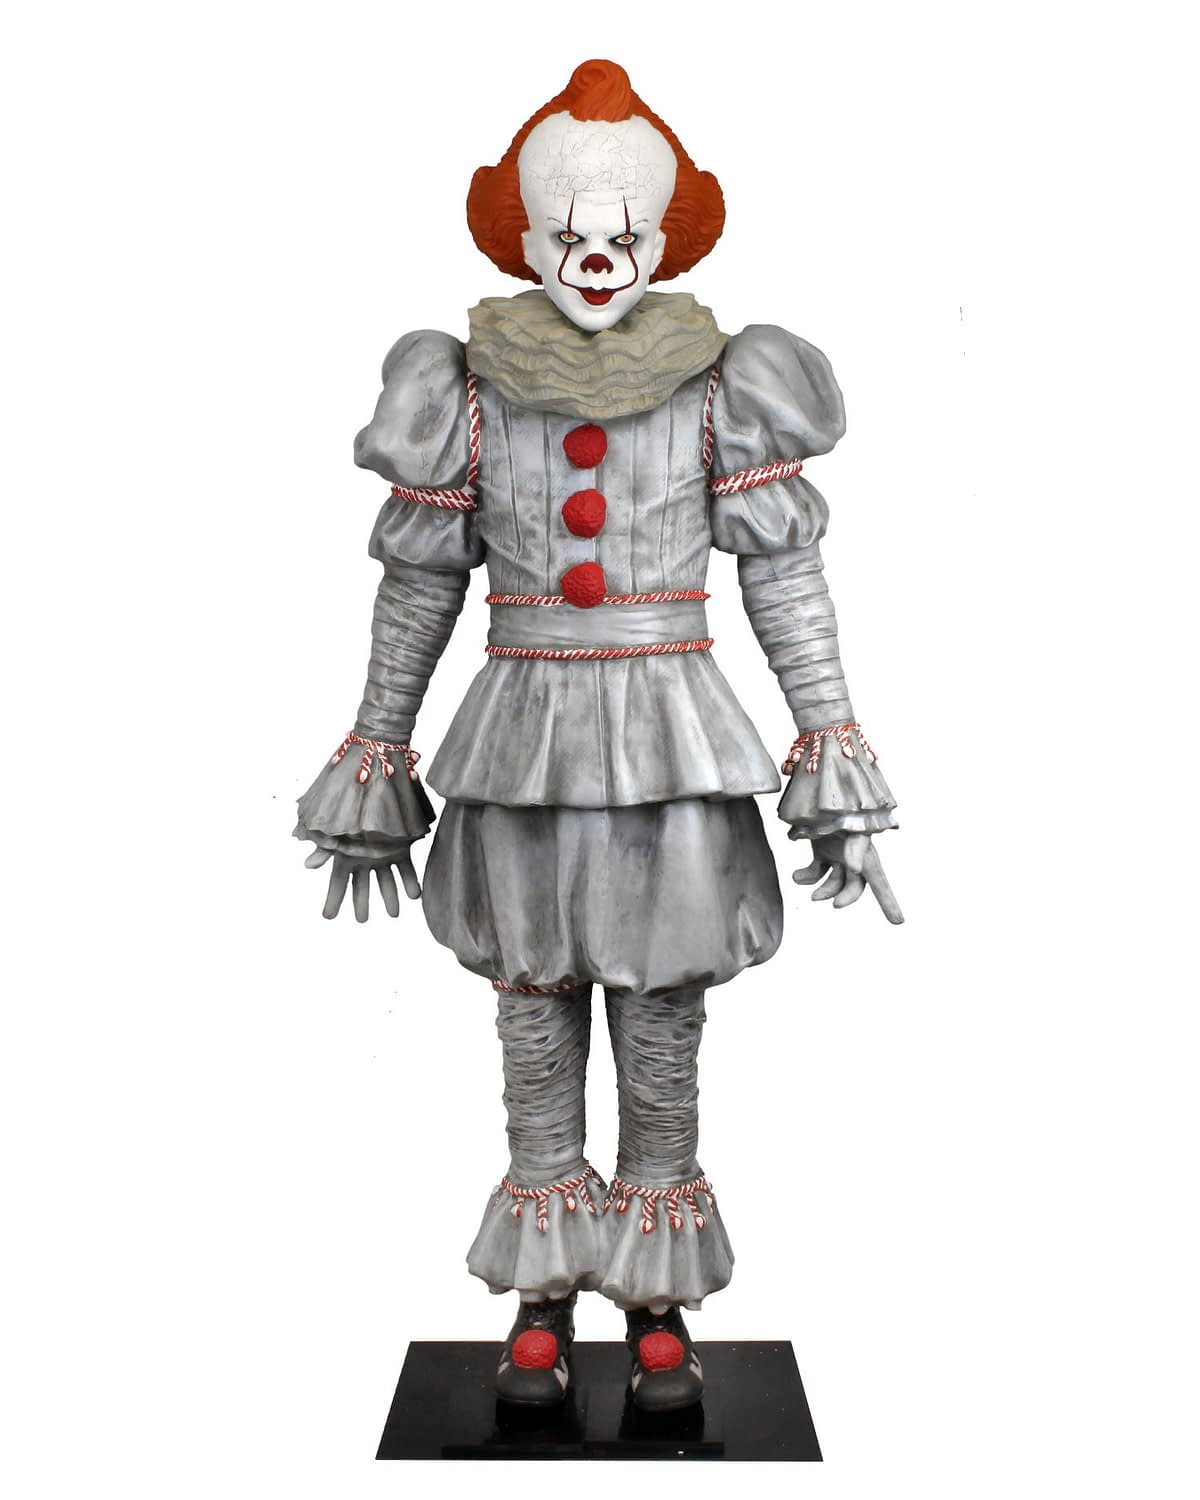 Bring home the life-size murder clown Pennywise by NECA